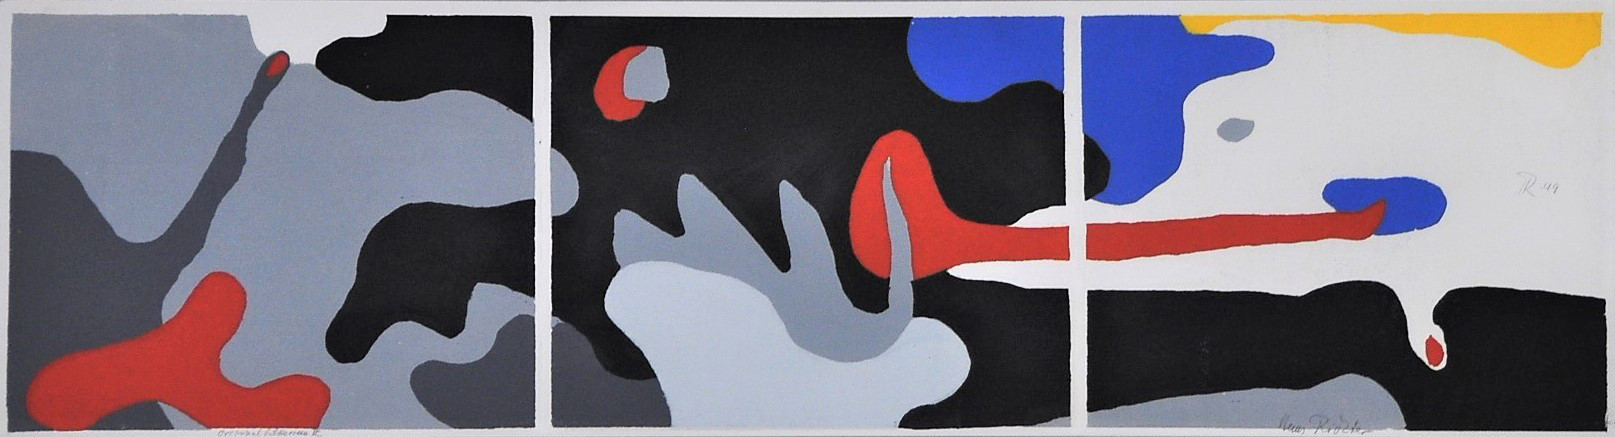 Triptych: Transformation - Dusk, Night, Dawn 1949